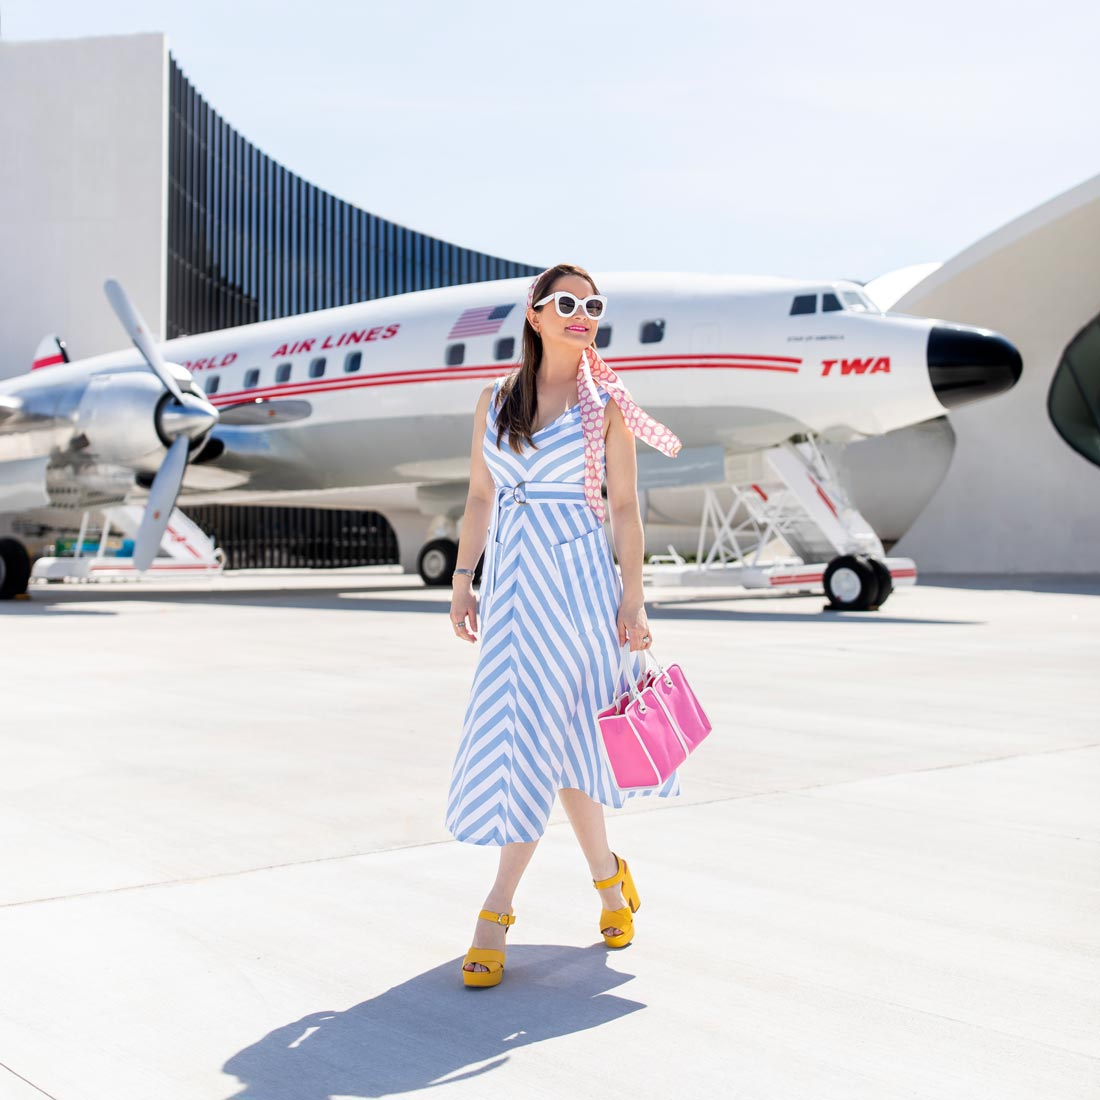 Jennifer Lake TWA Hotel Plane